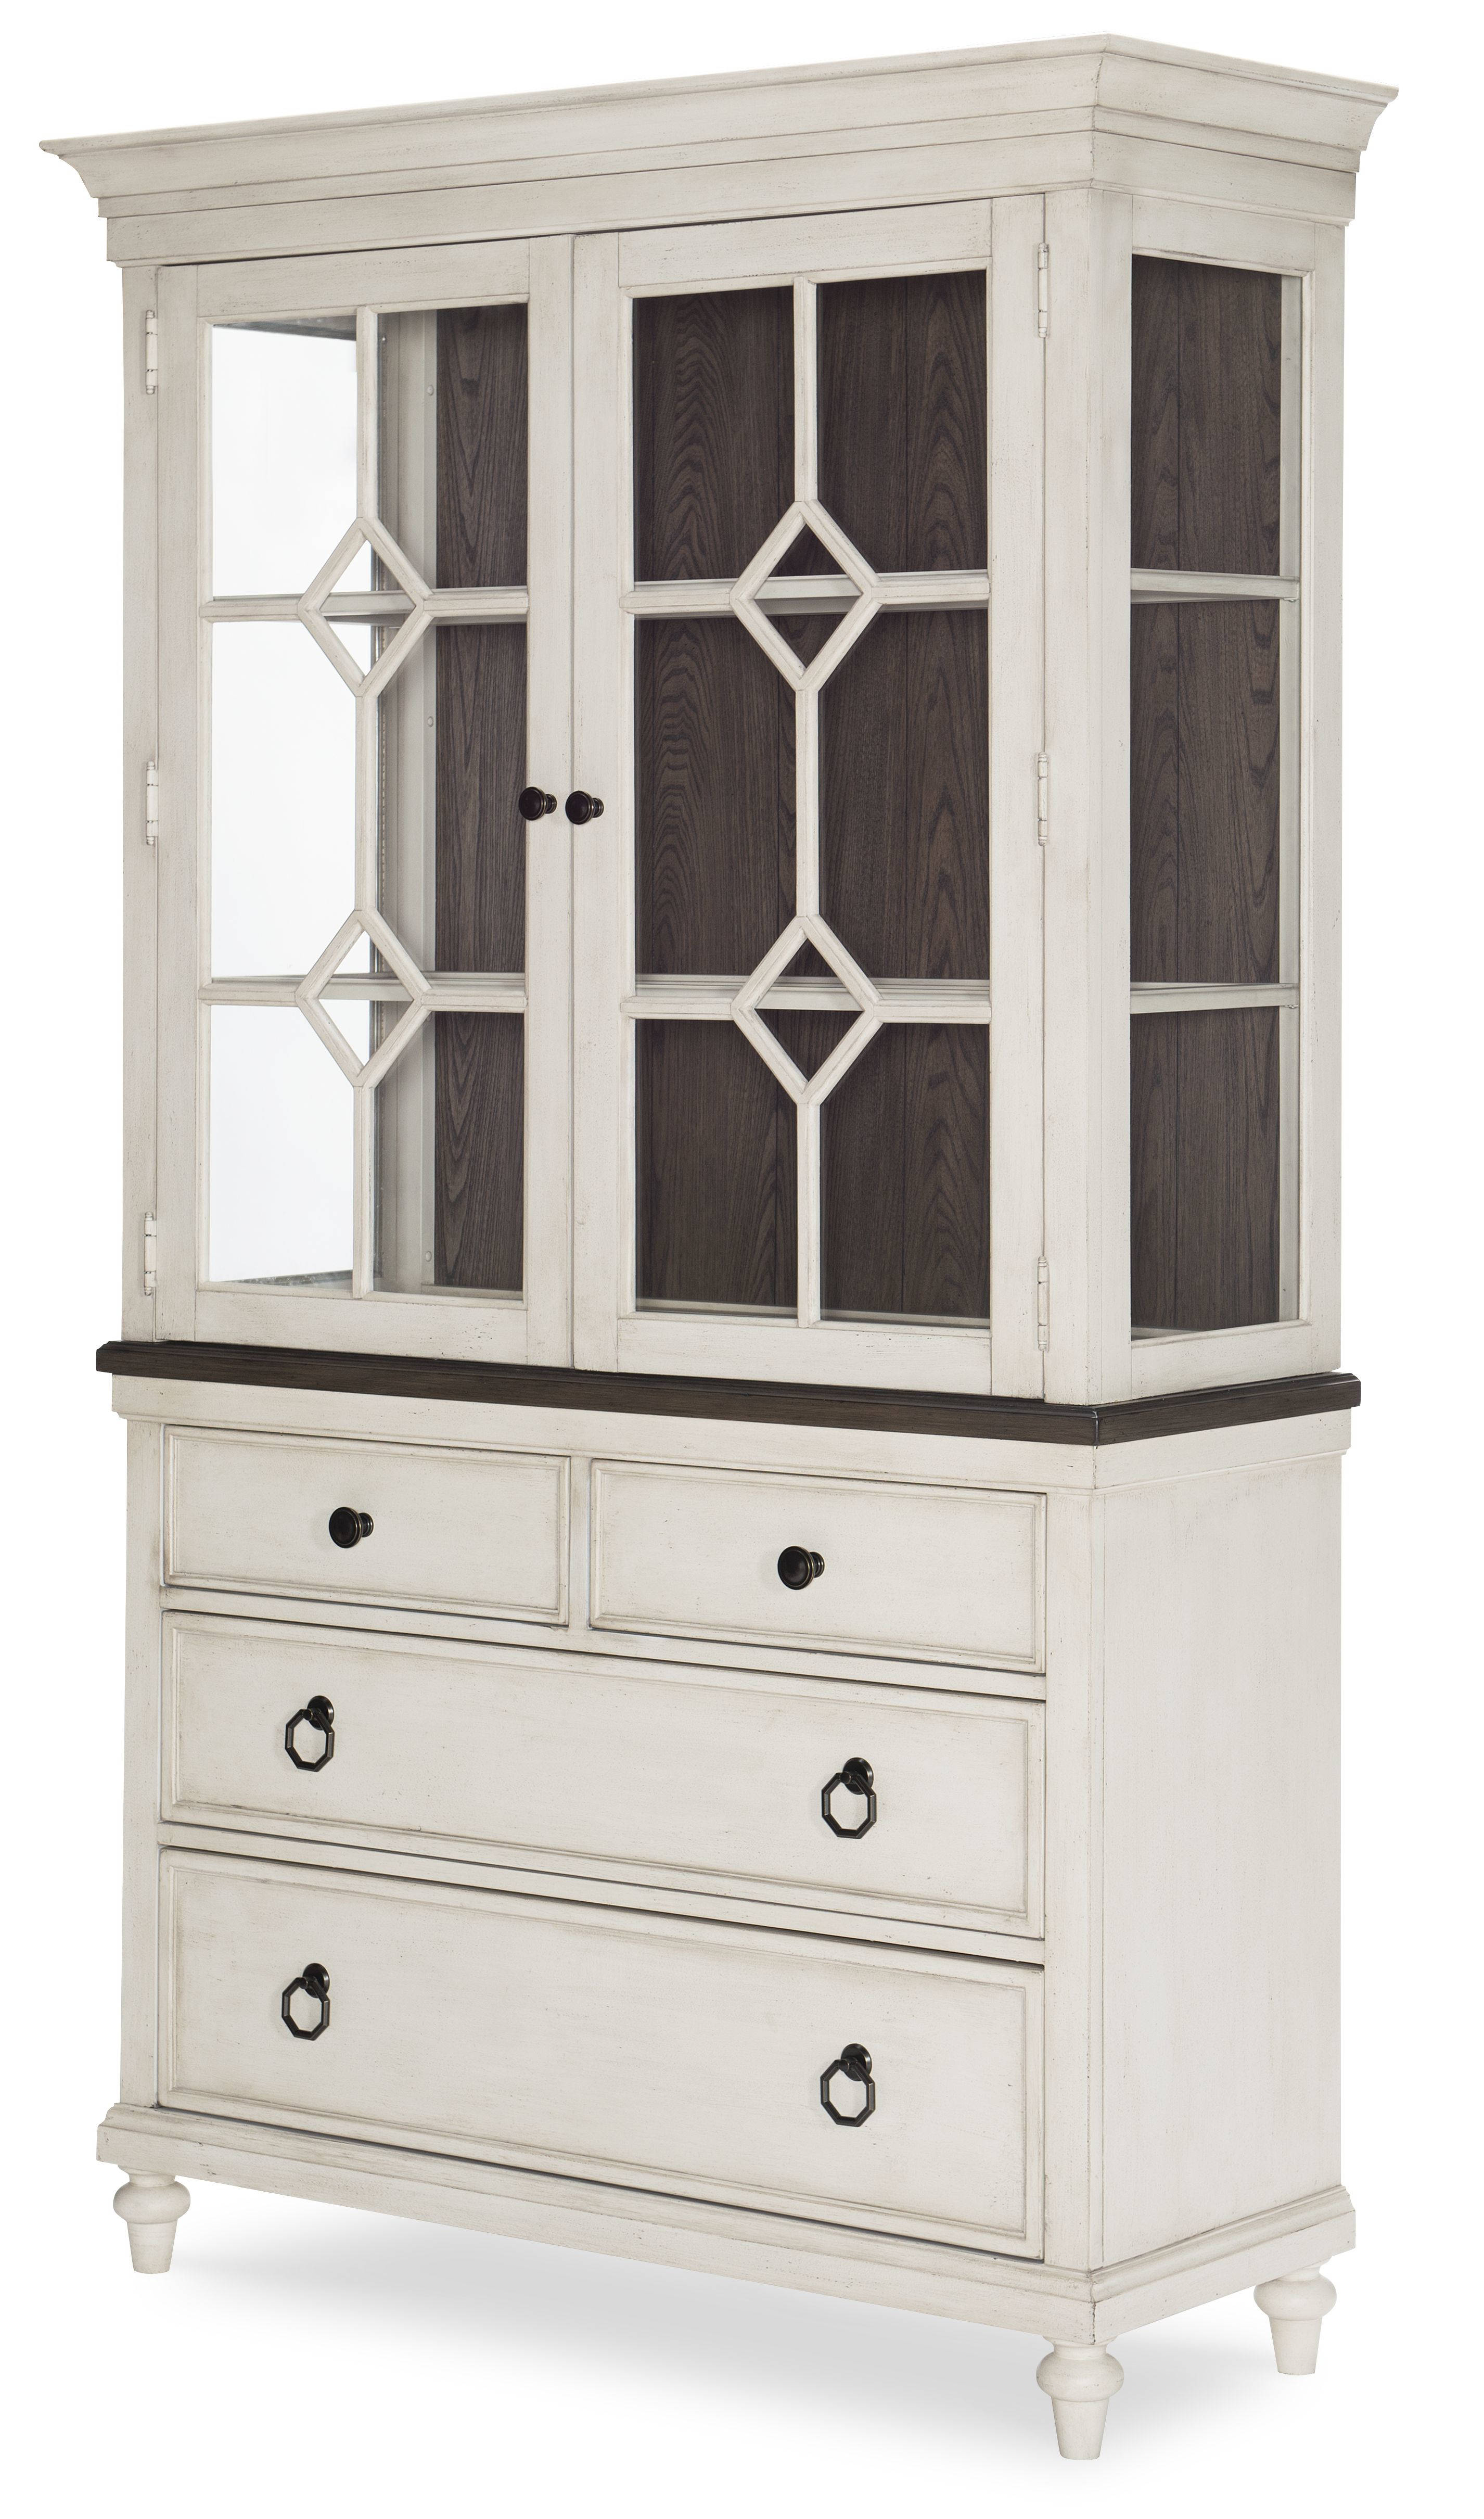 Charmant Legacy Furniture Brookhaven Vintage Linen China Cabinet Click To Enlarge ...